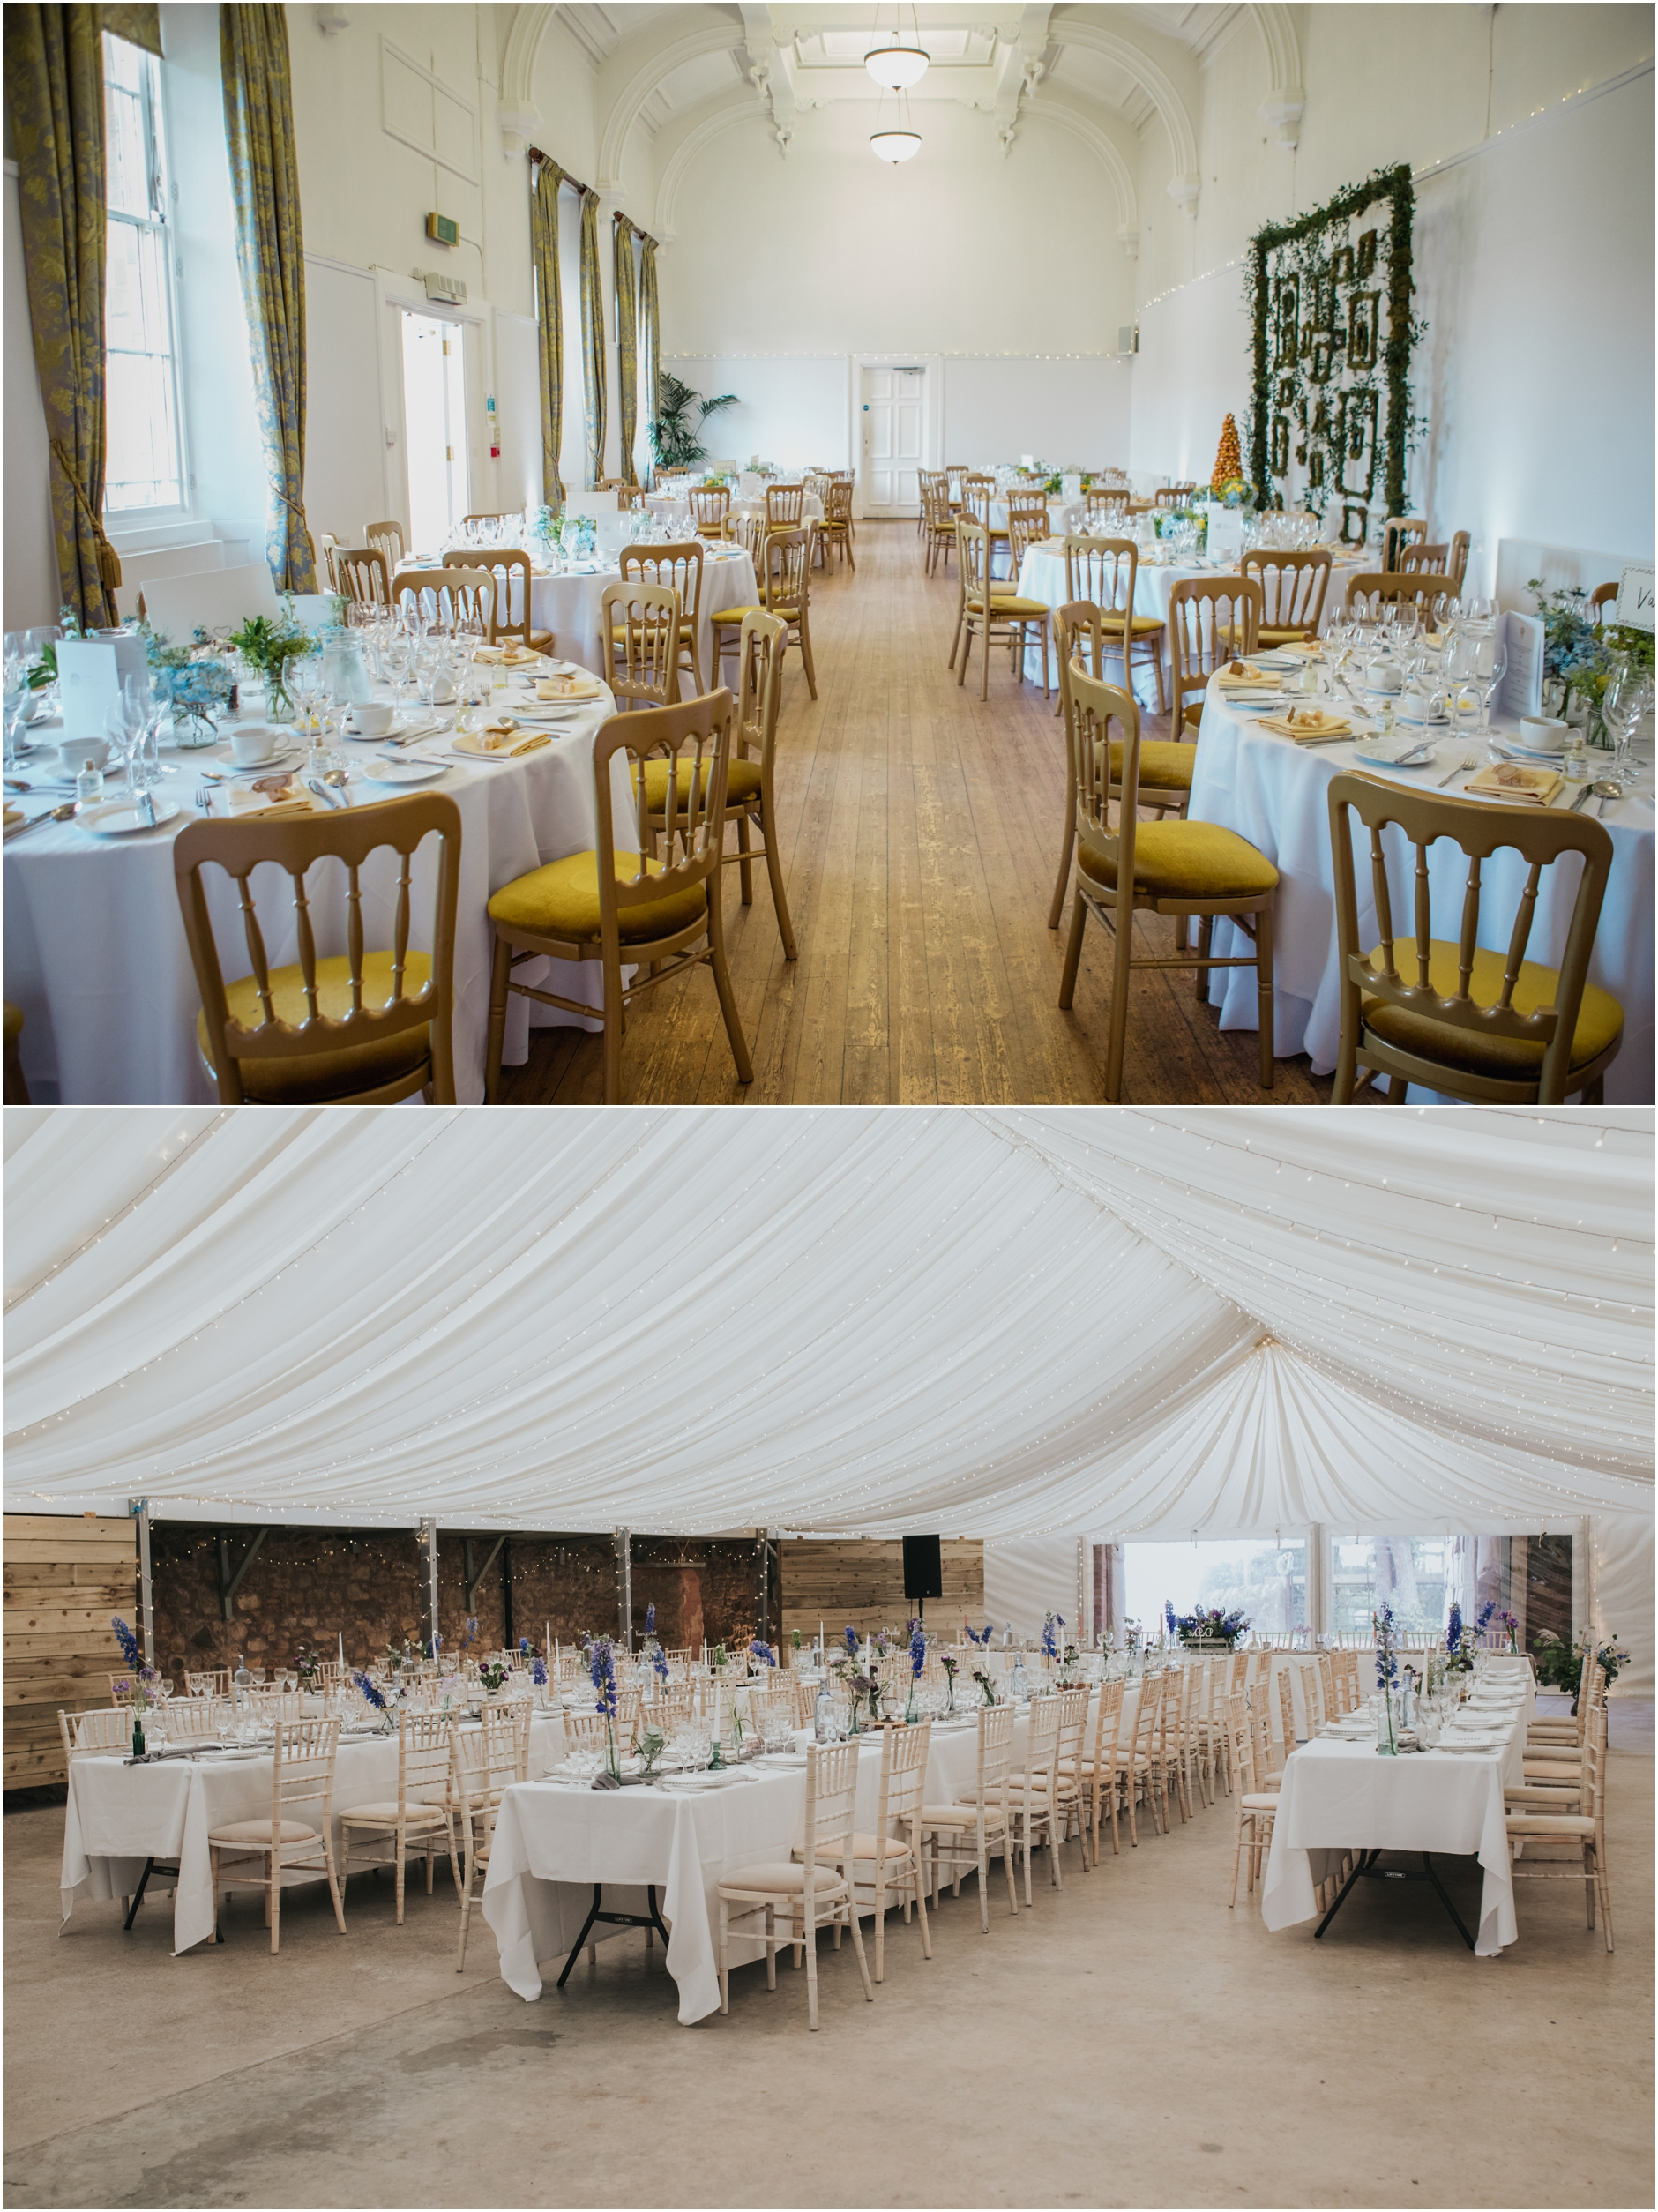 royal botanical gardens edinburgh cow shed crail table set up venue details